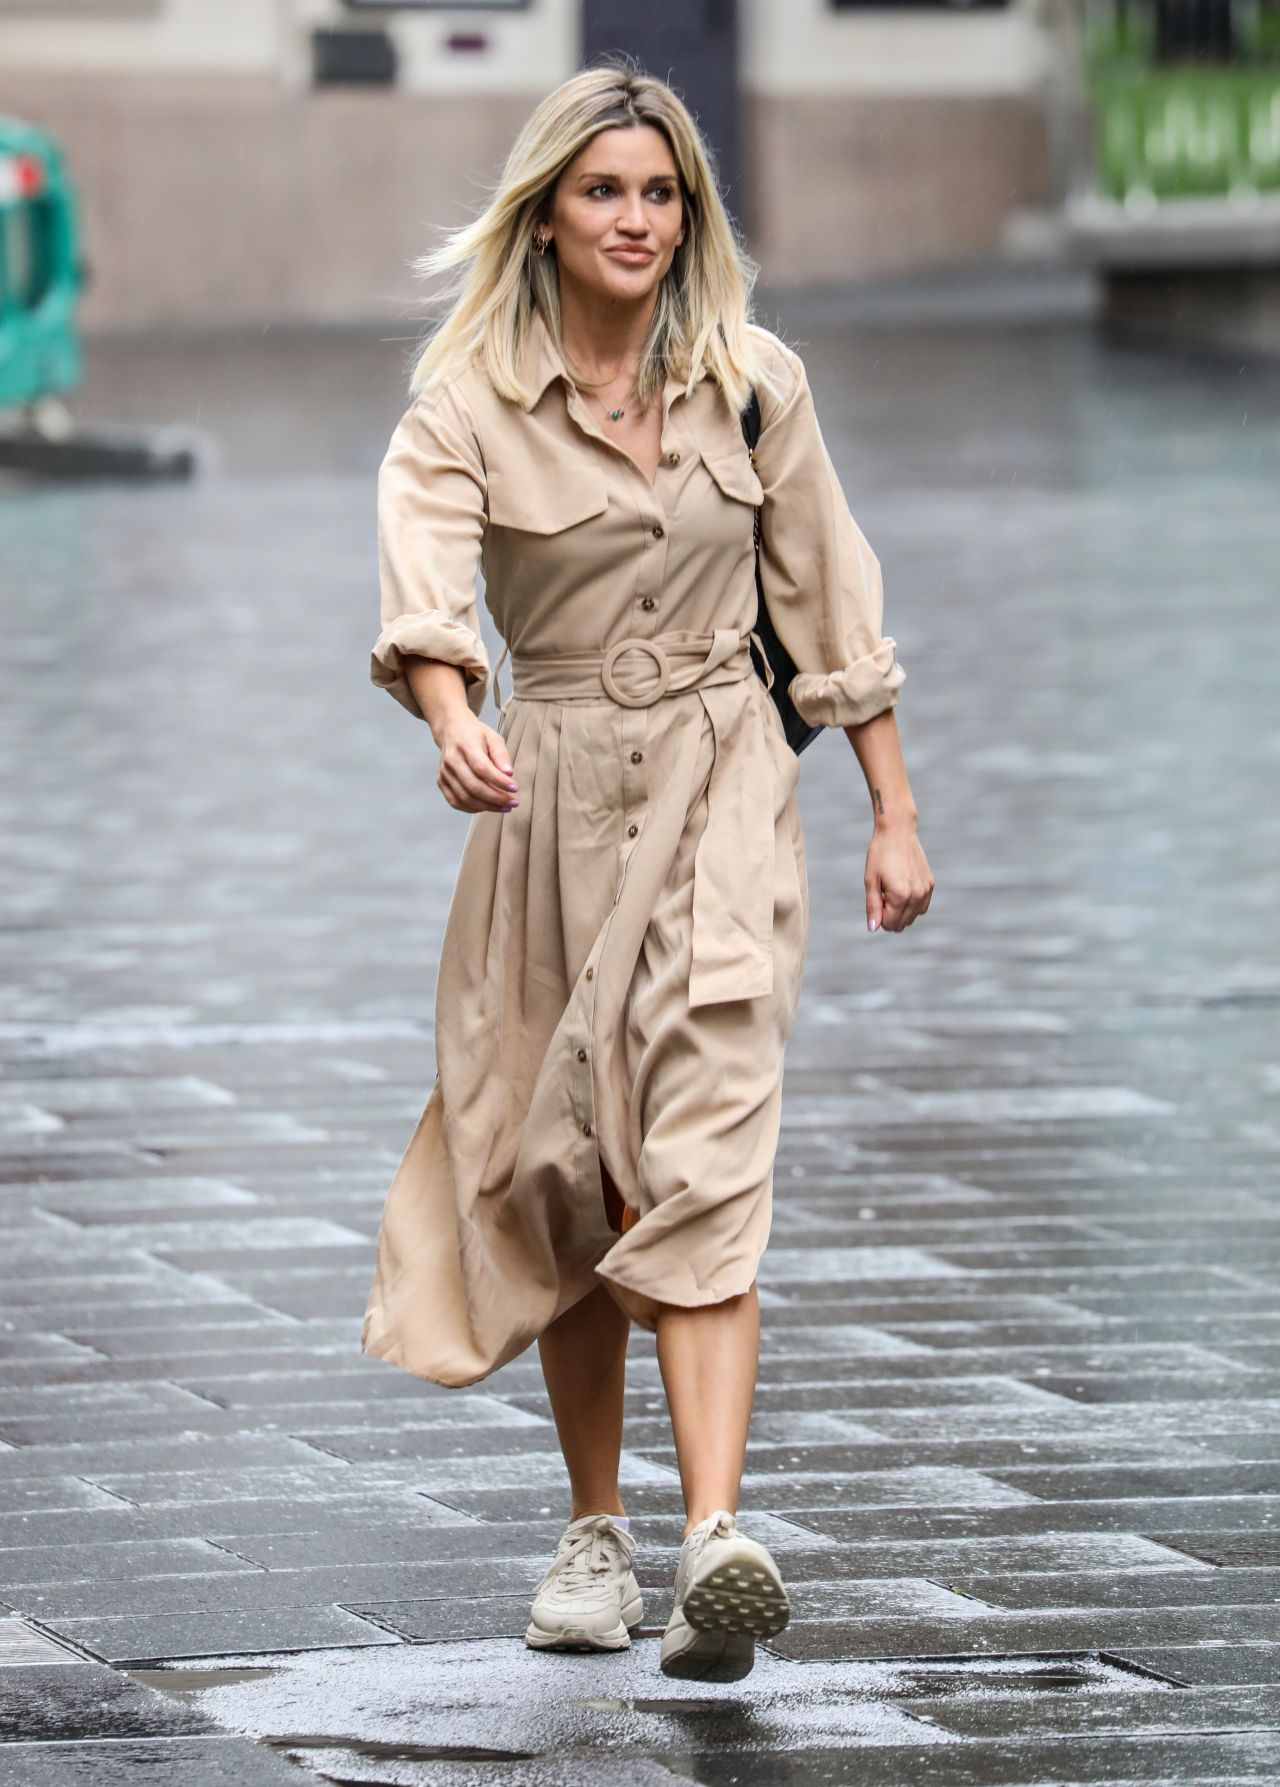 Ashley Roberts in Cream Belted Shirt